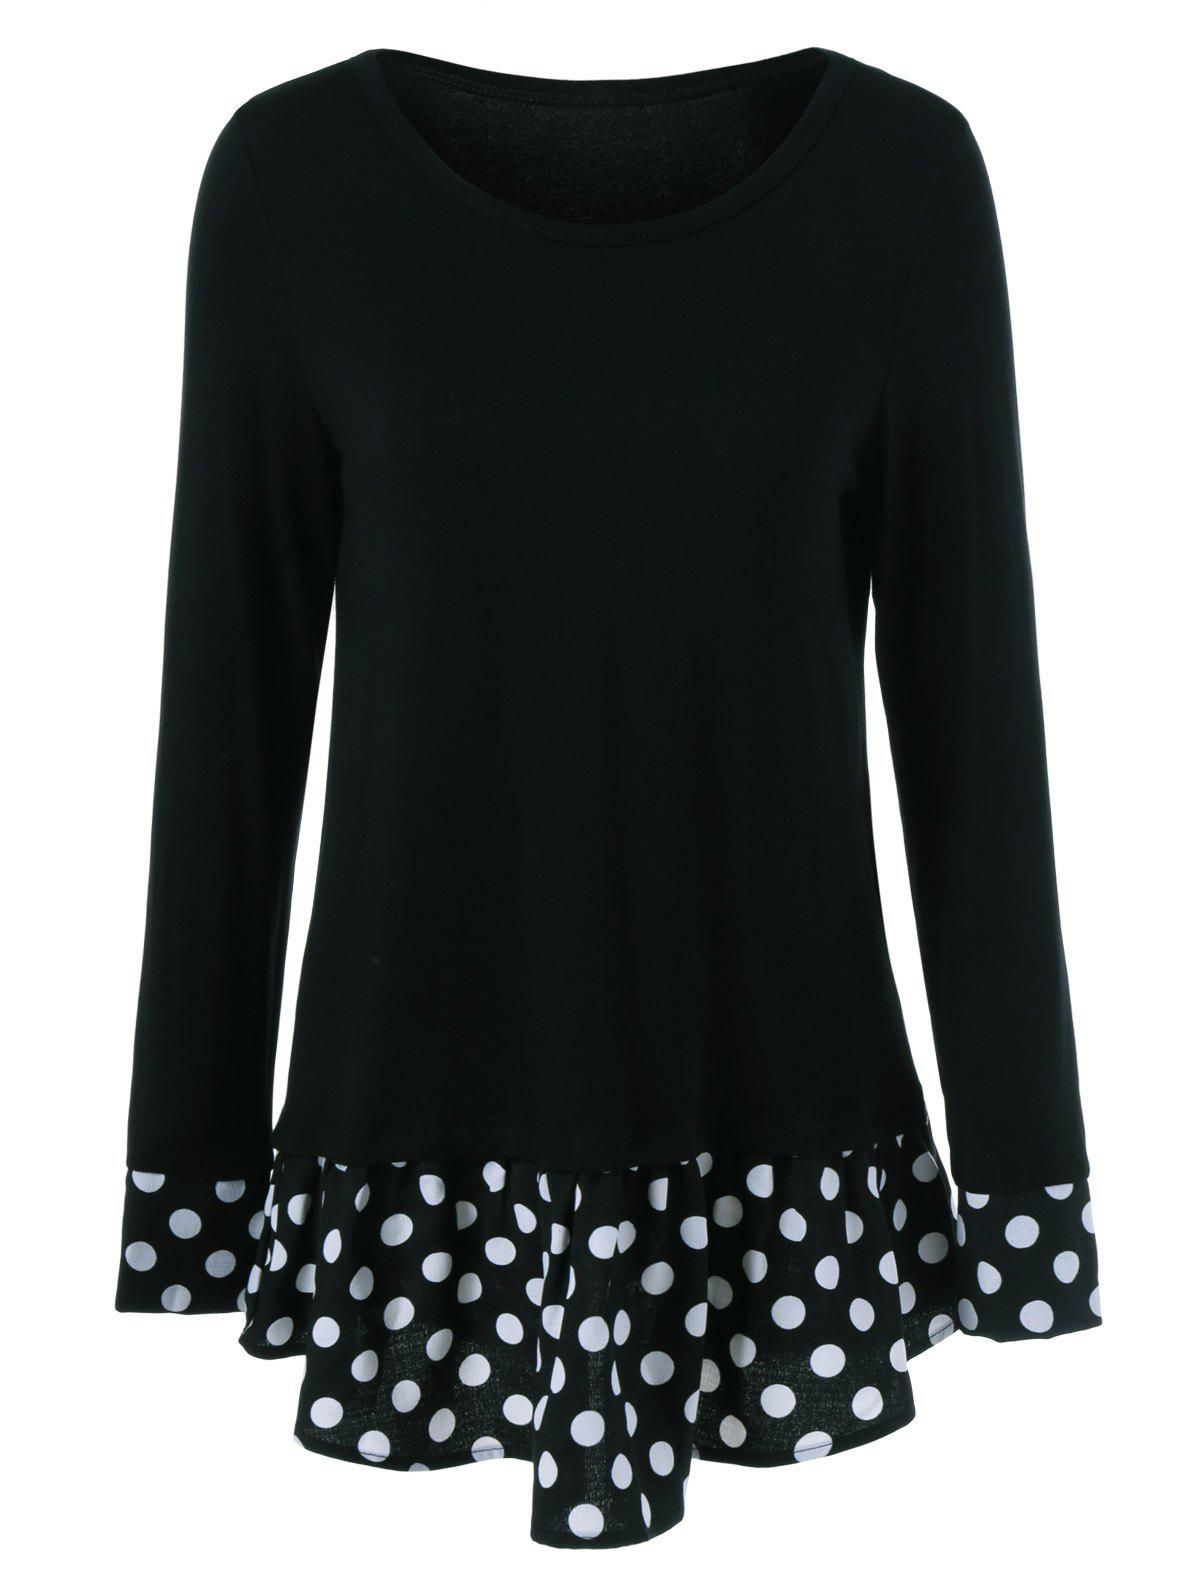 Polka Dot Patchwork Flounced T-Shirt - BLACK L